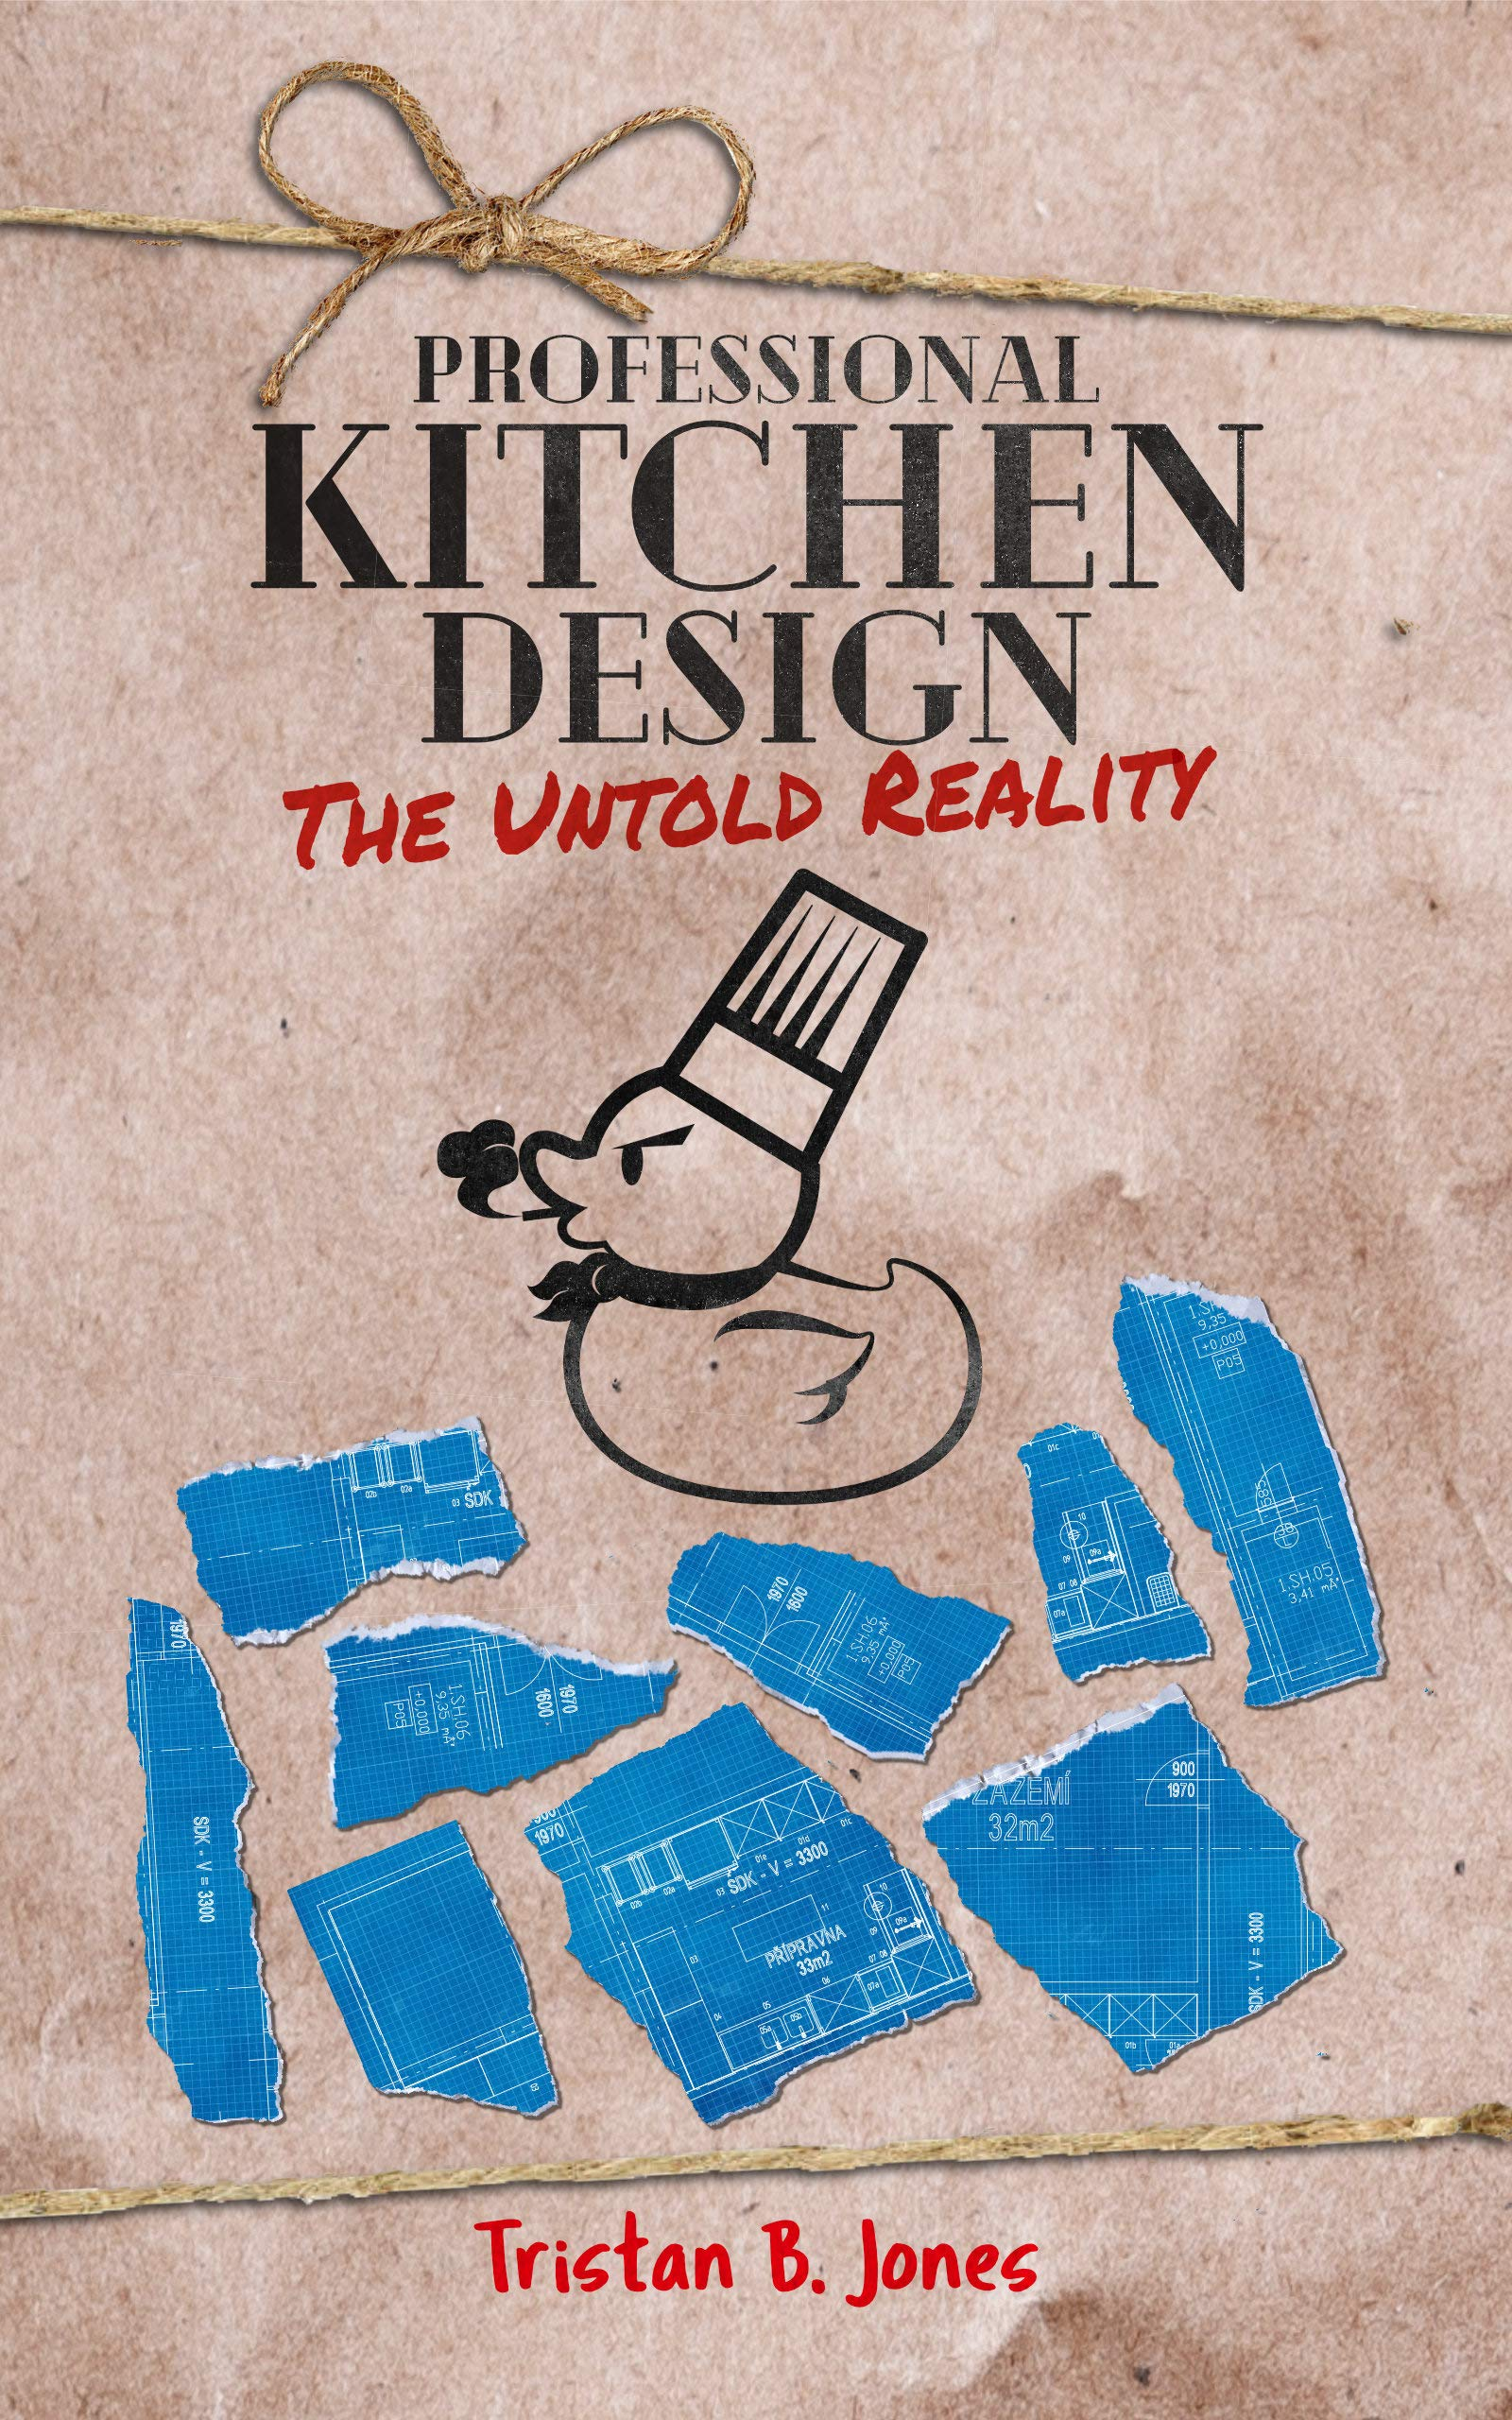 Professional Kitchen Design: The untold reality (The untold realities of how to create and maintain a profitable, professional kitchen Book 3)